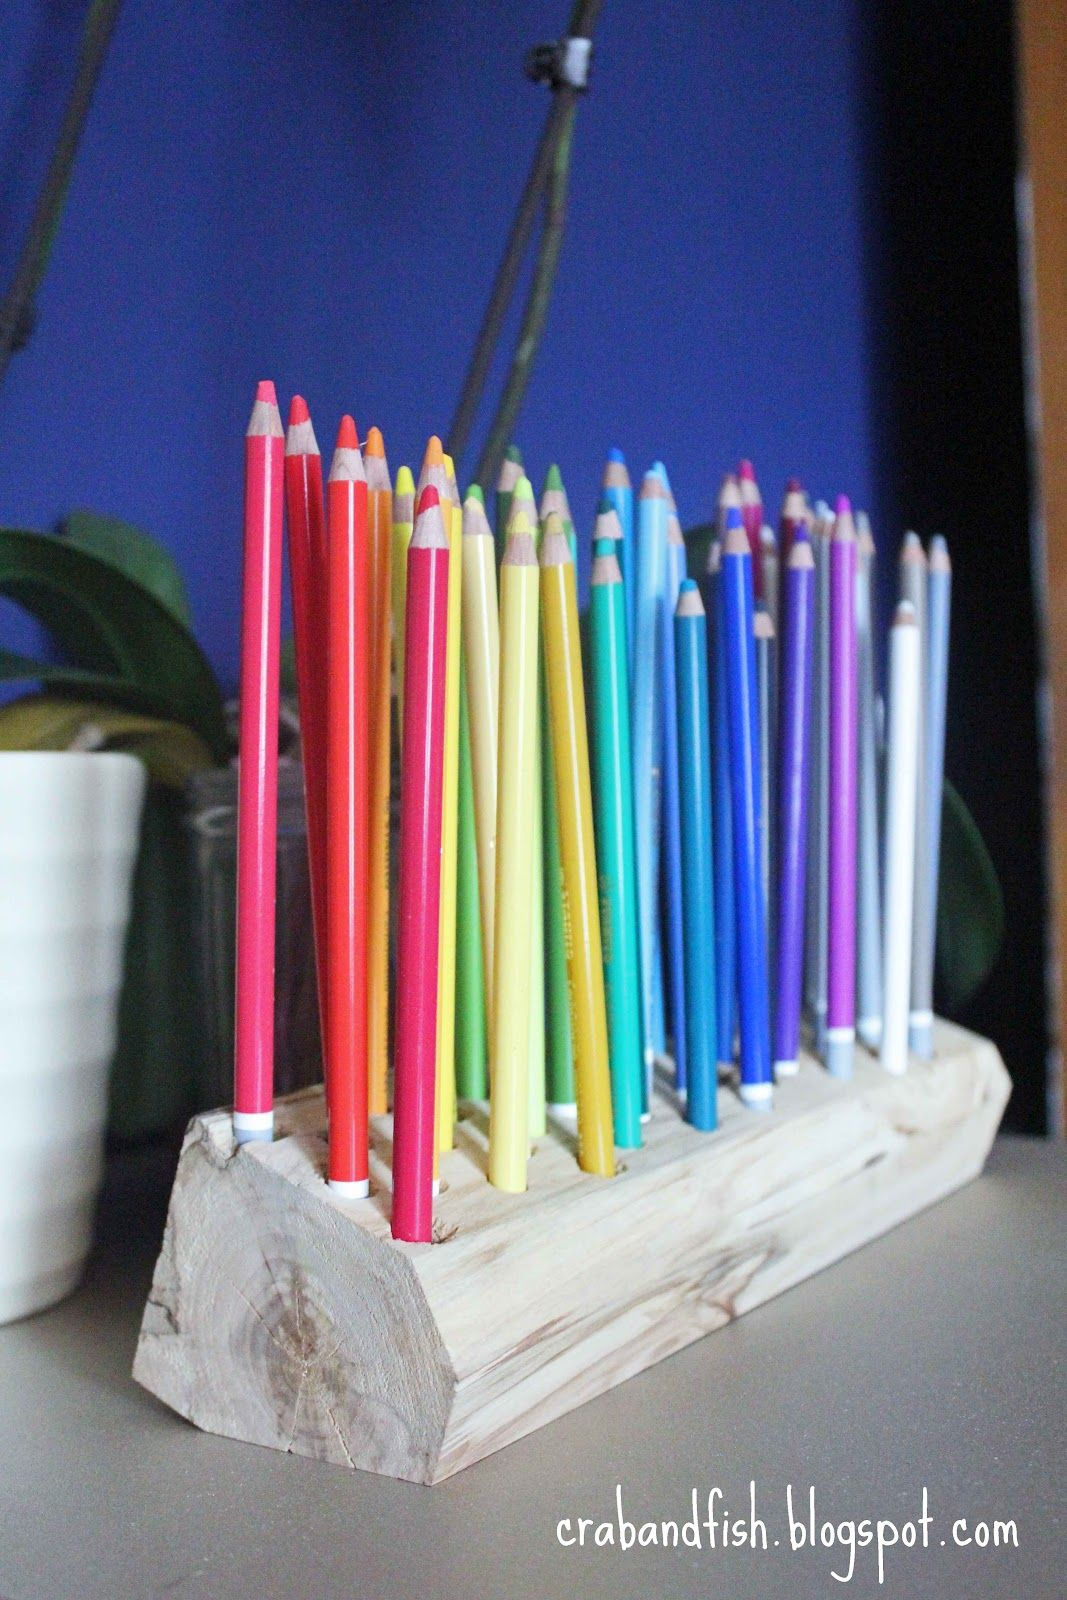 Homemade Pencil Holders Like This Idea For The Most Often Used Pencils Or A Fun Way To